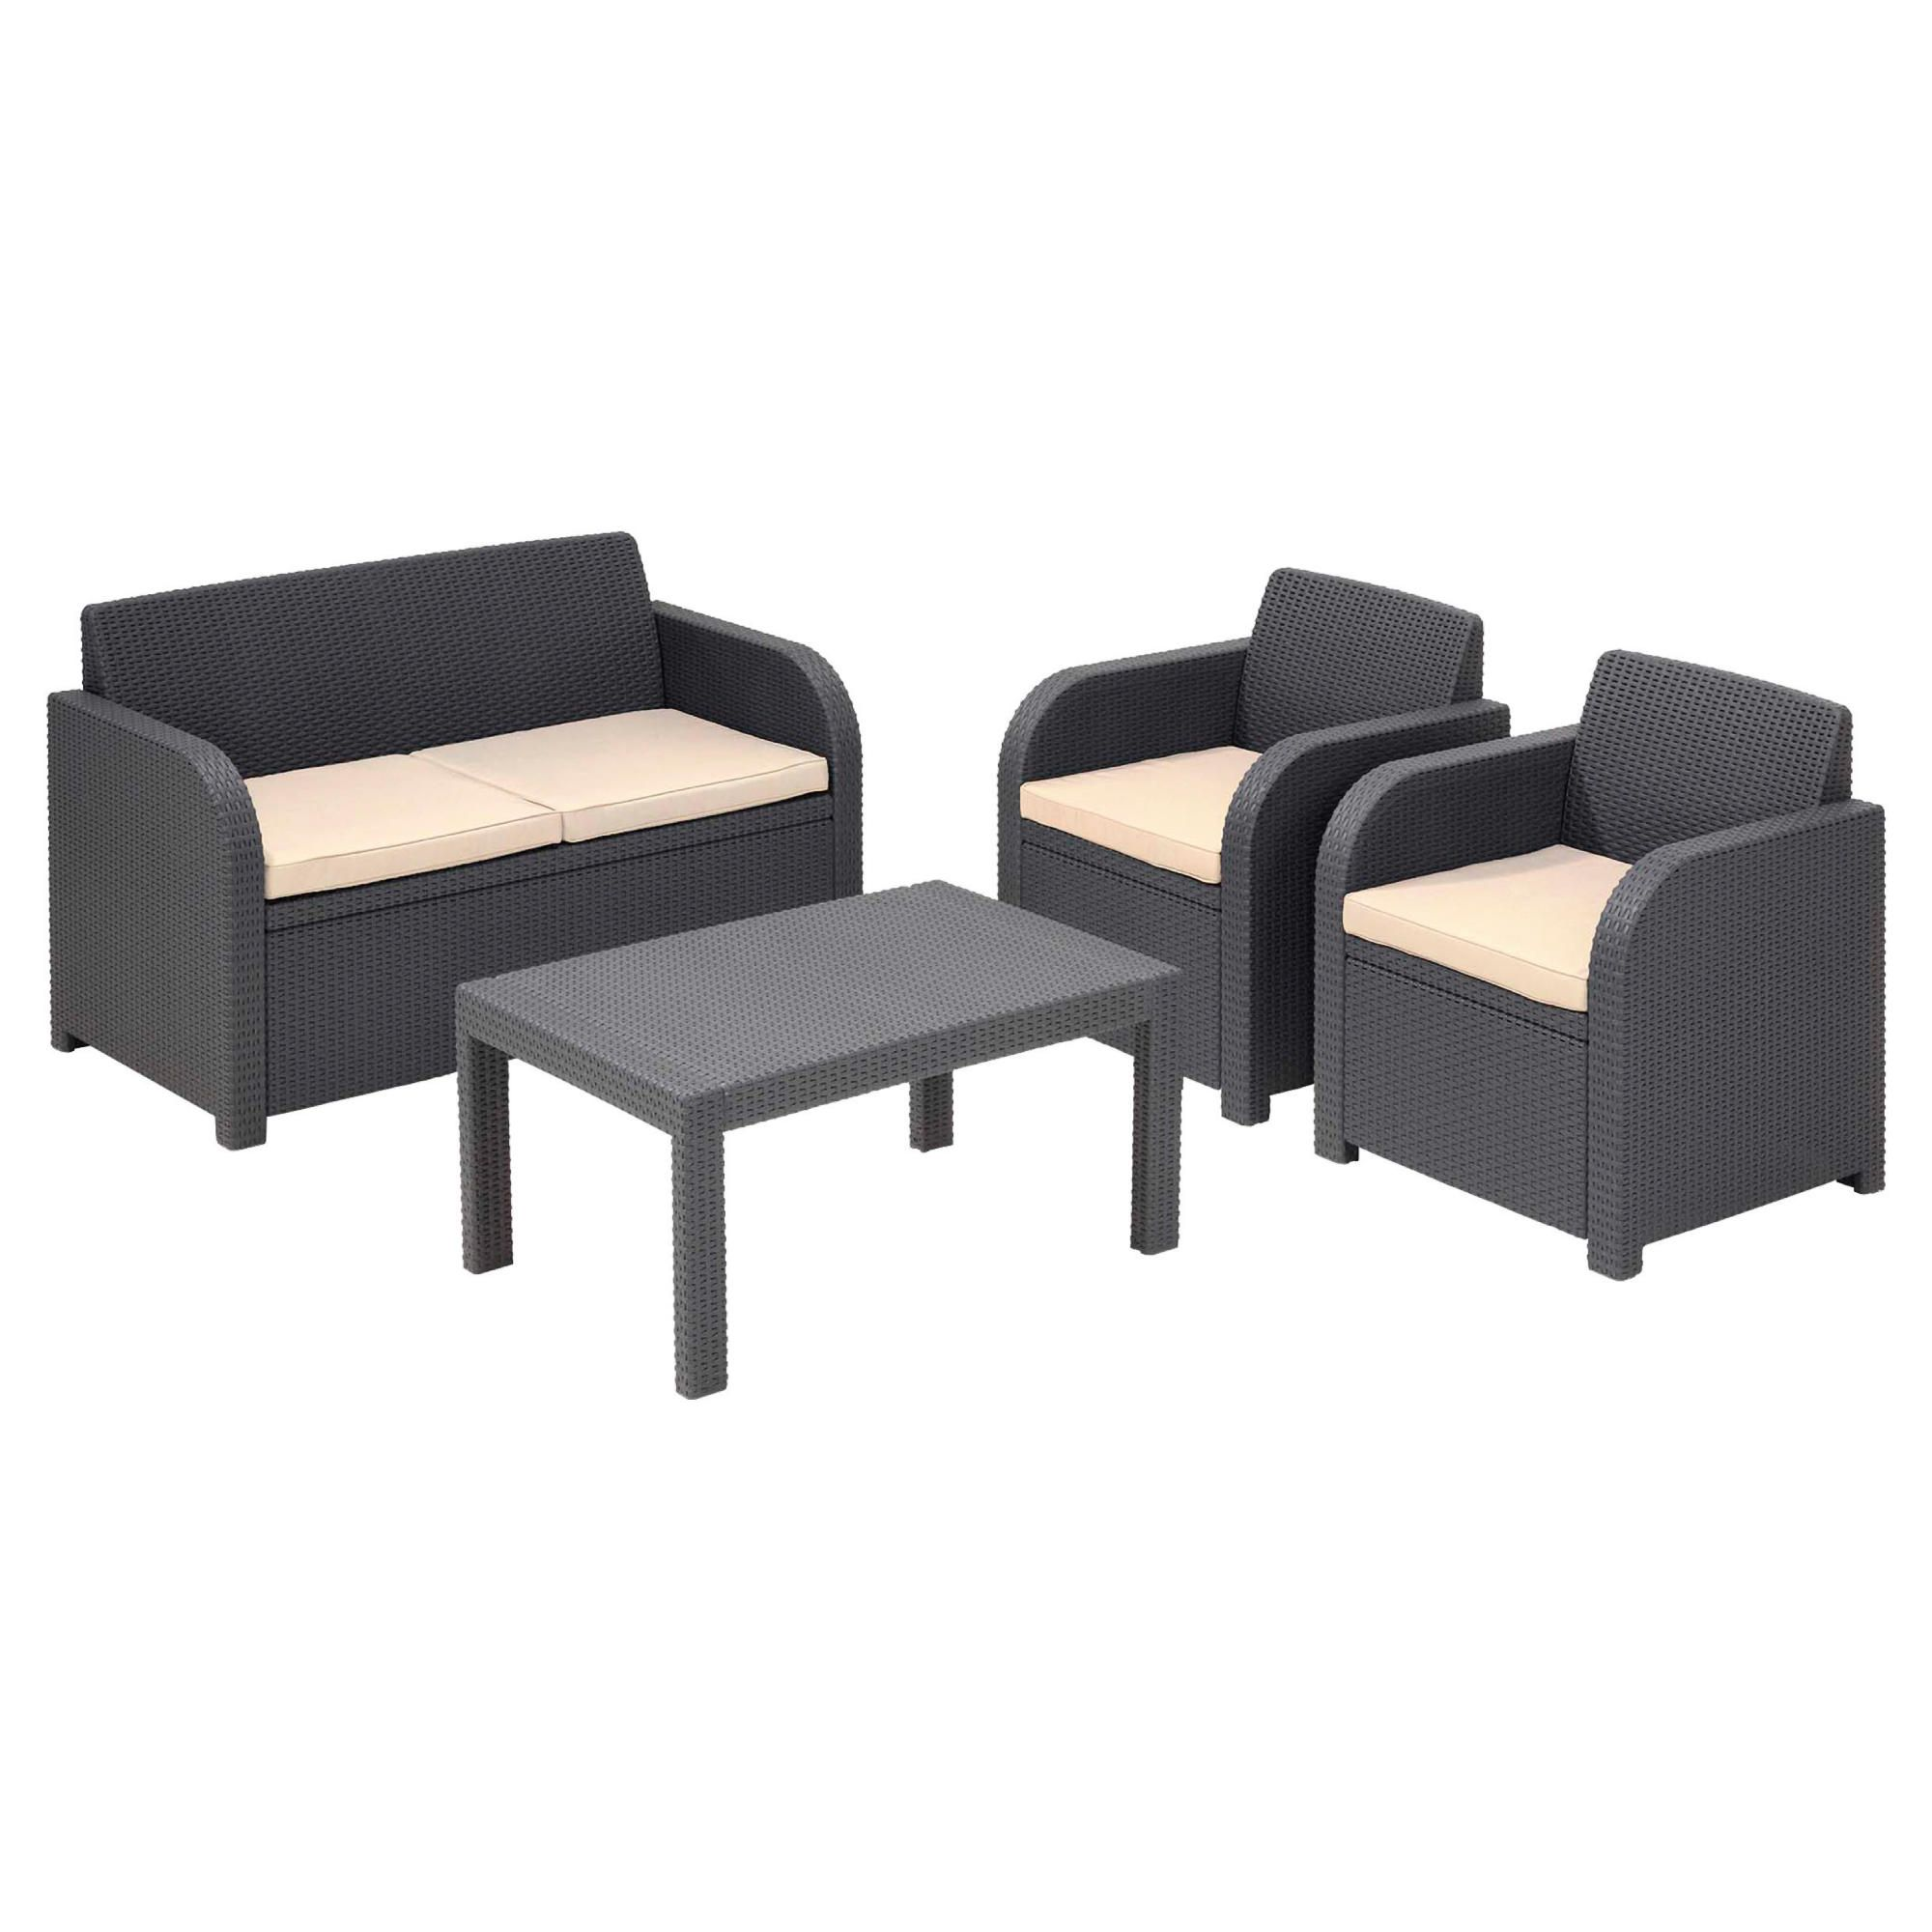 Keter Carolina Rattan Effect Lounge Set at Tesco Direct